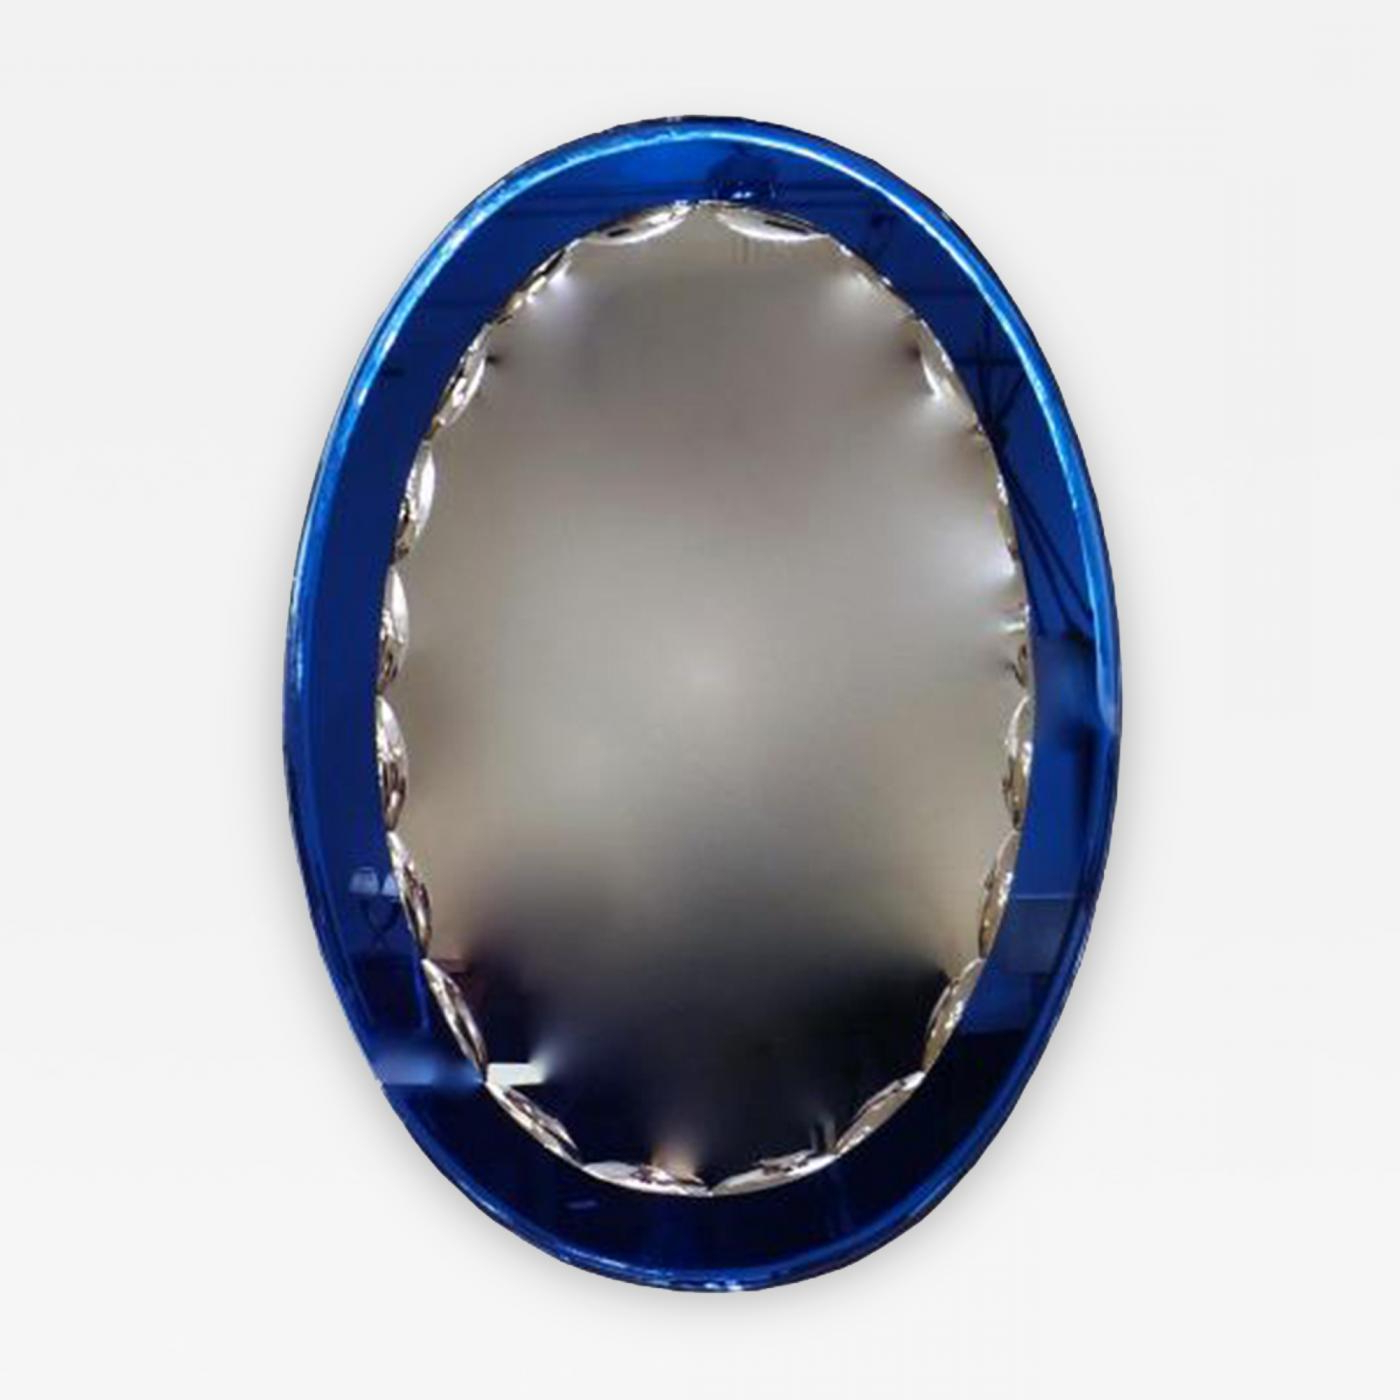 Popular Blue Framed Wall Mirrors Inside Fontana Arte – An Oval Wall Mirror With A Blue Mirrored Frame In The Style Of Fontana Arte (View 10 of 20)